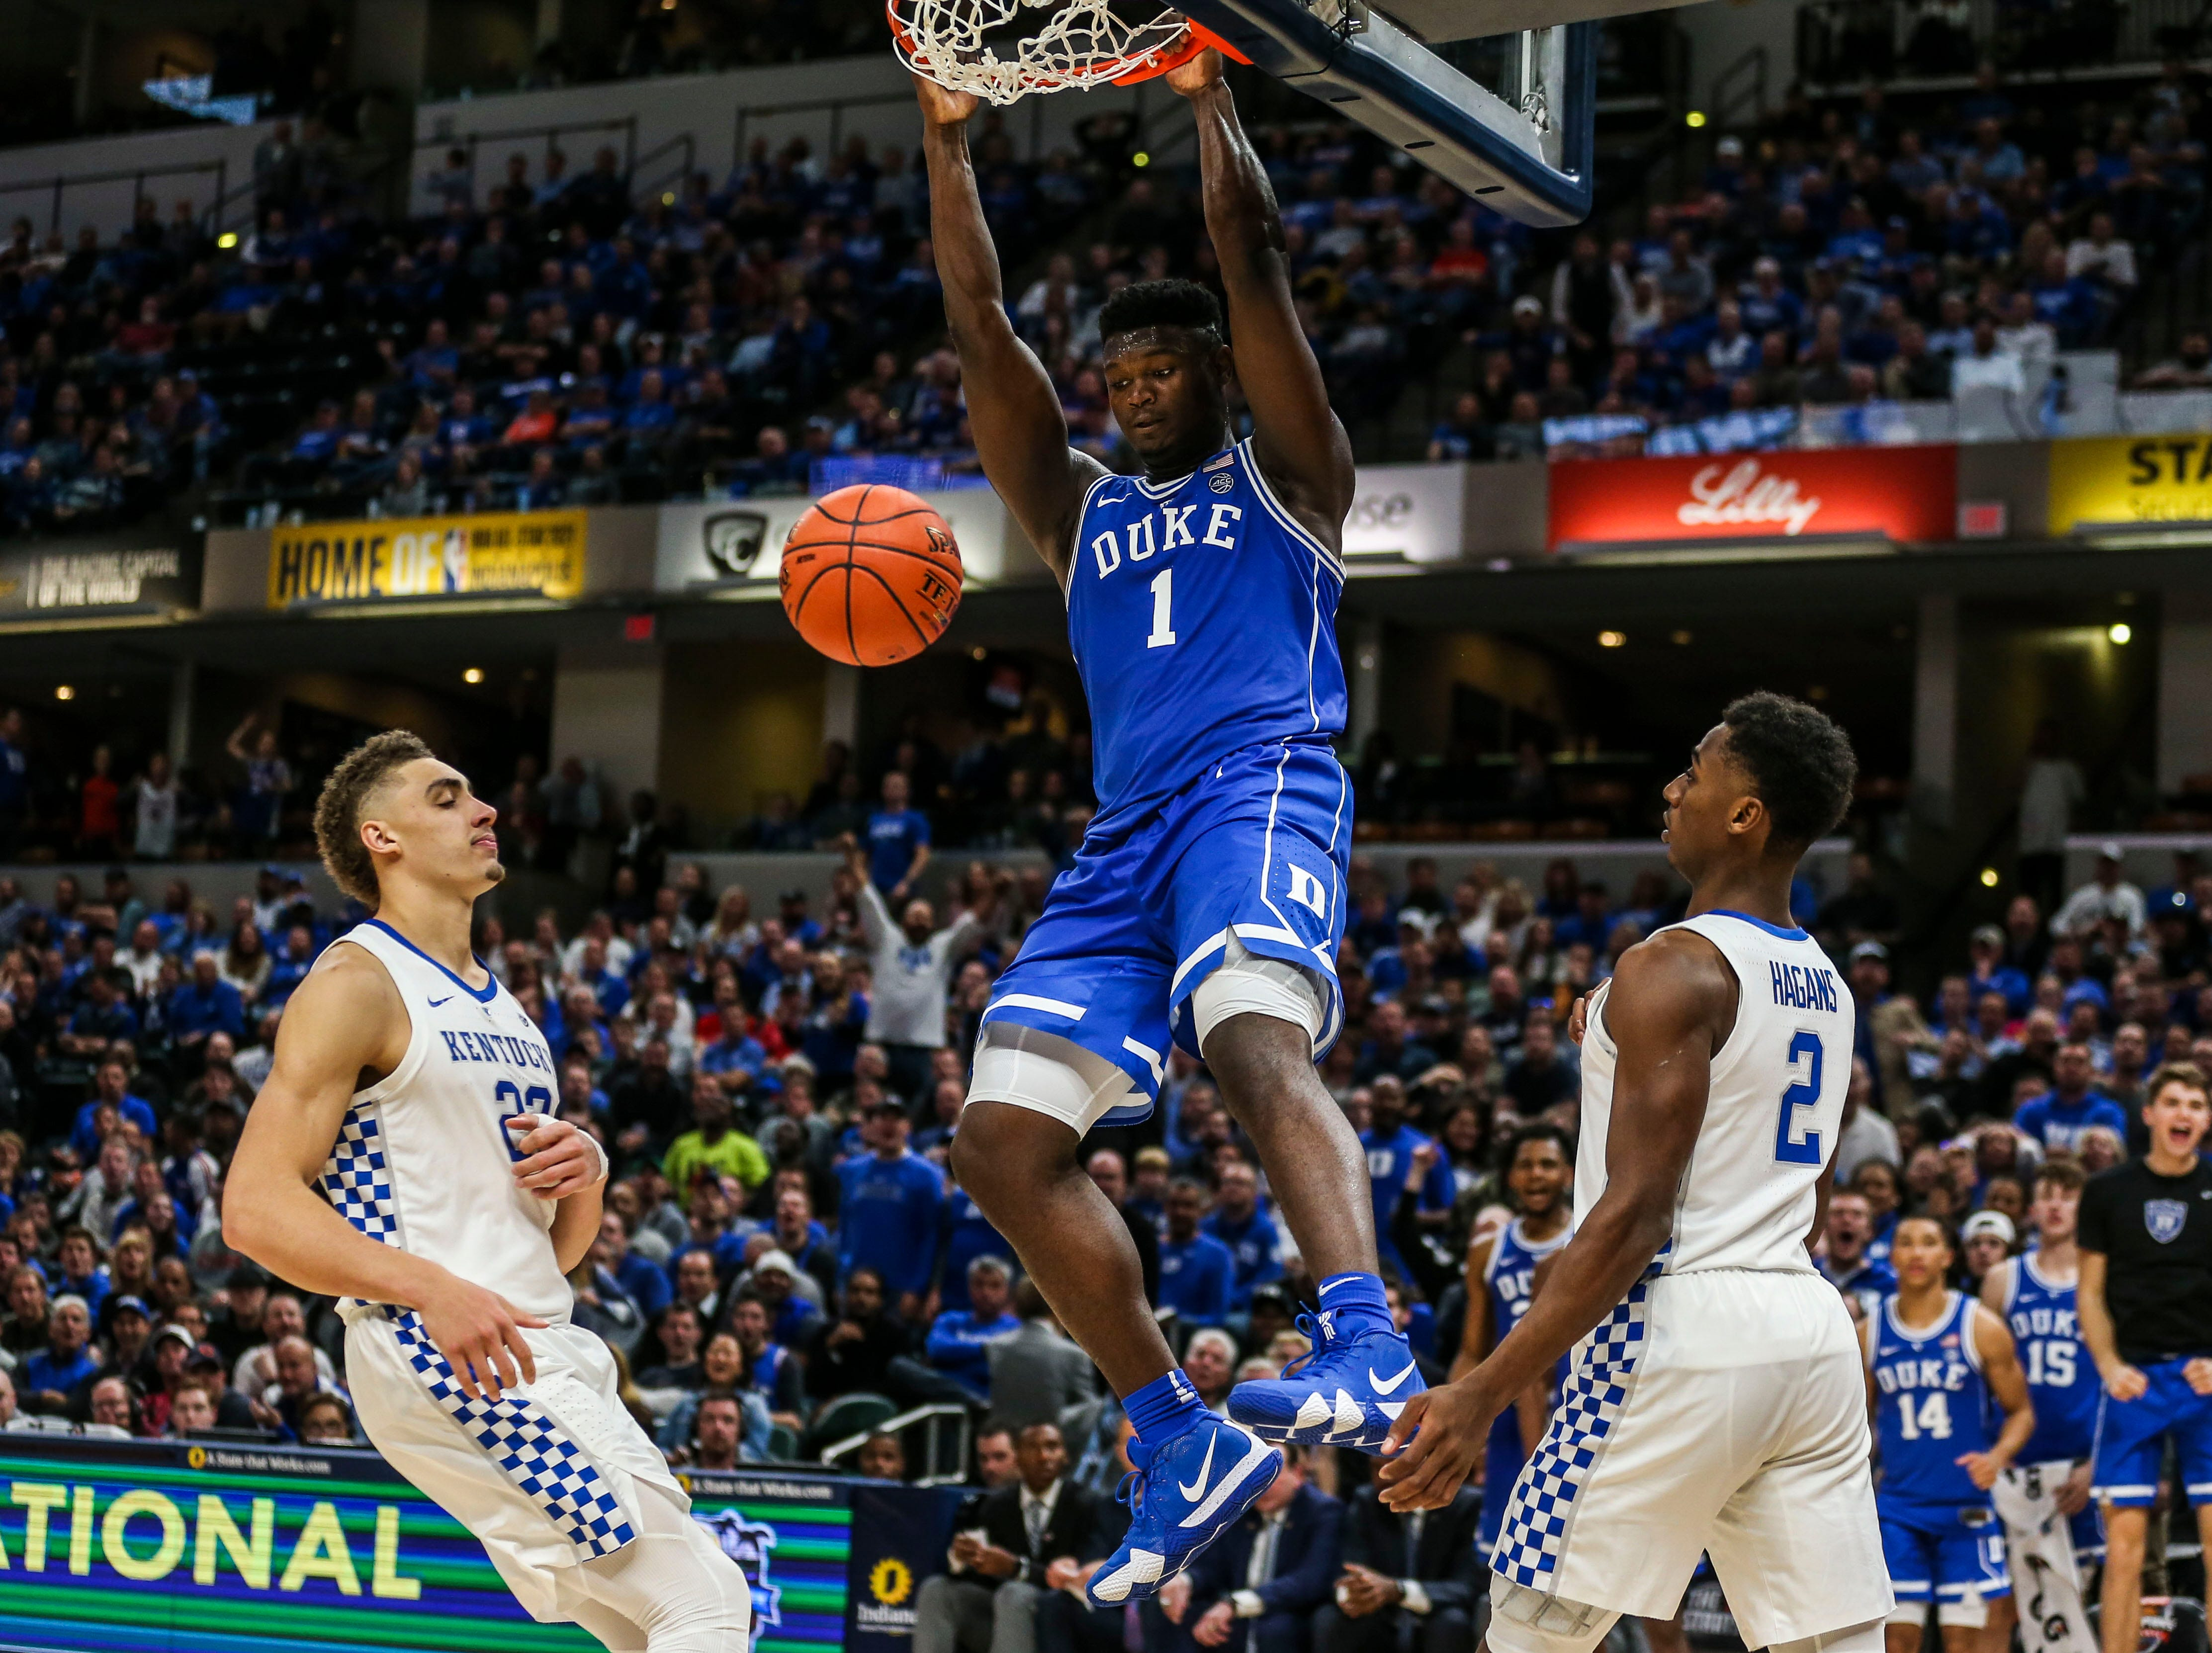 Duke's Zion Williamson played like a veteran as the freshman scored 29 points, including this dunk against an overmatched Kentucky team as the Blue Devils crushed the Wildcats 118-84 in the Champions Classic Tuesday night. Nov. 6, 2018